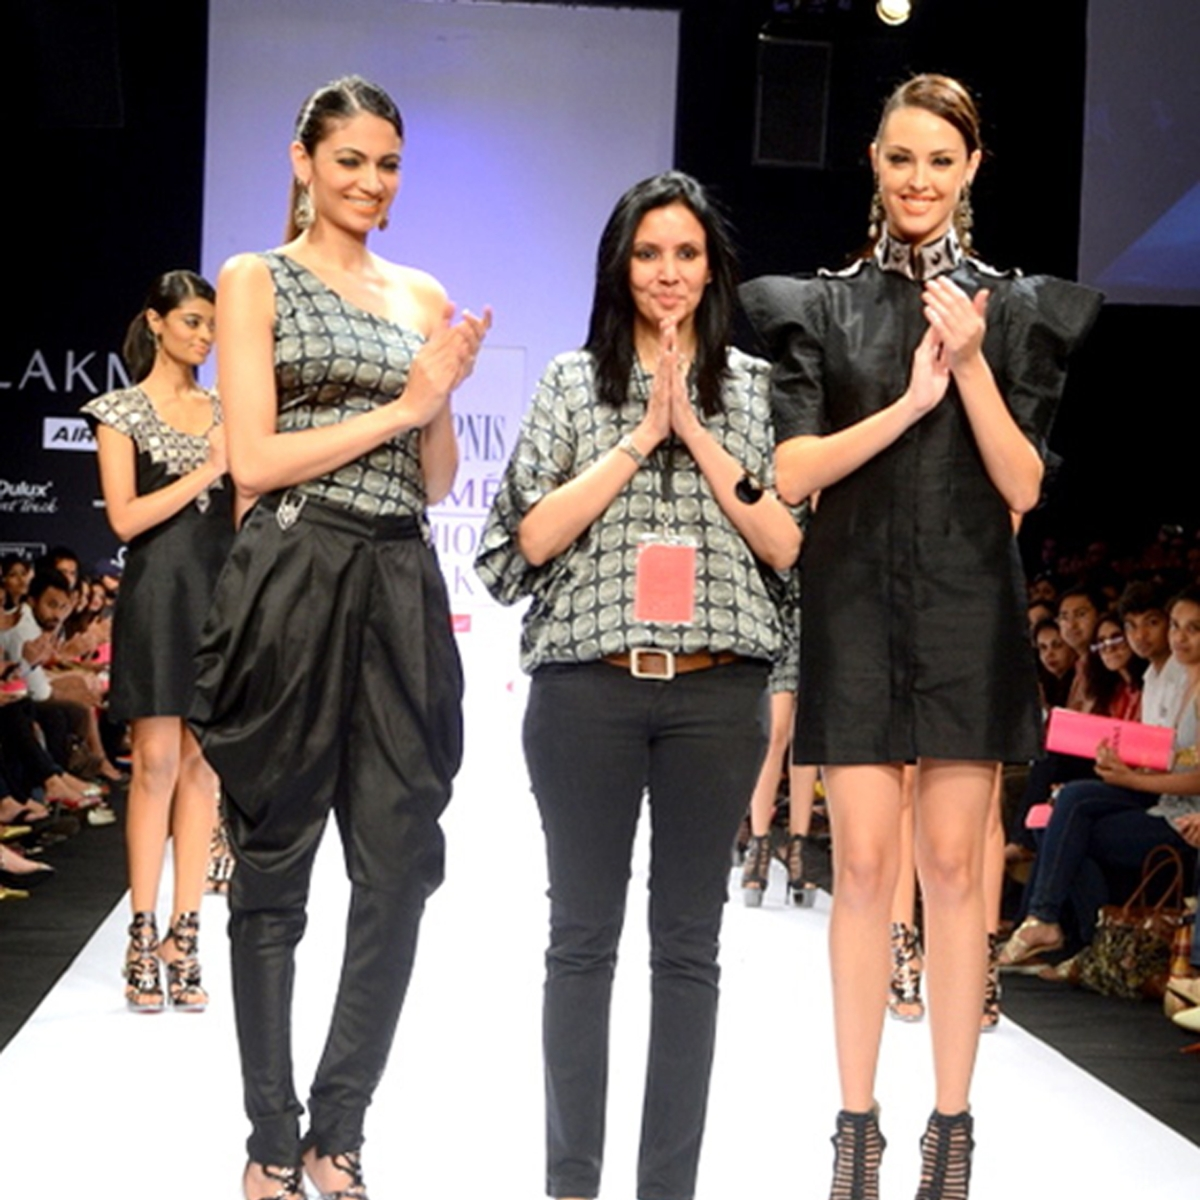 The way we were: Ahead of Lakme Fashion Week, the fashion fraternity takes a walk down memory lane